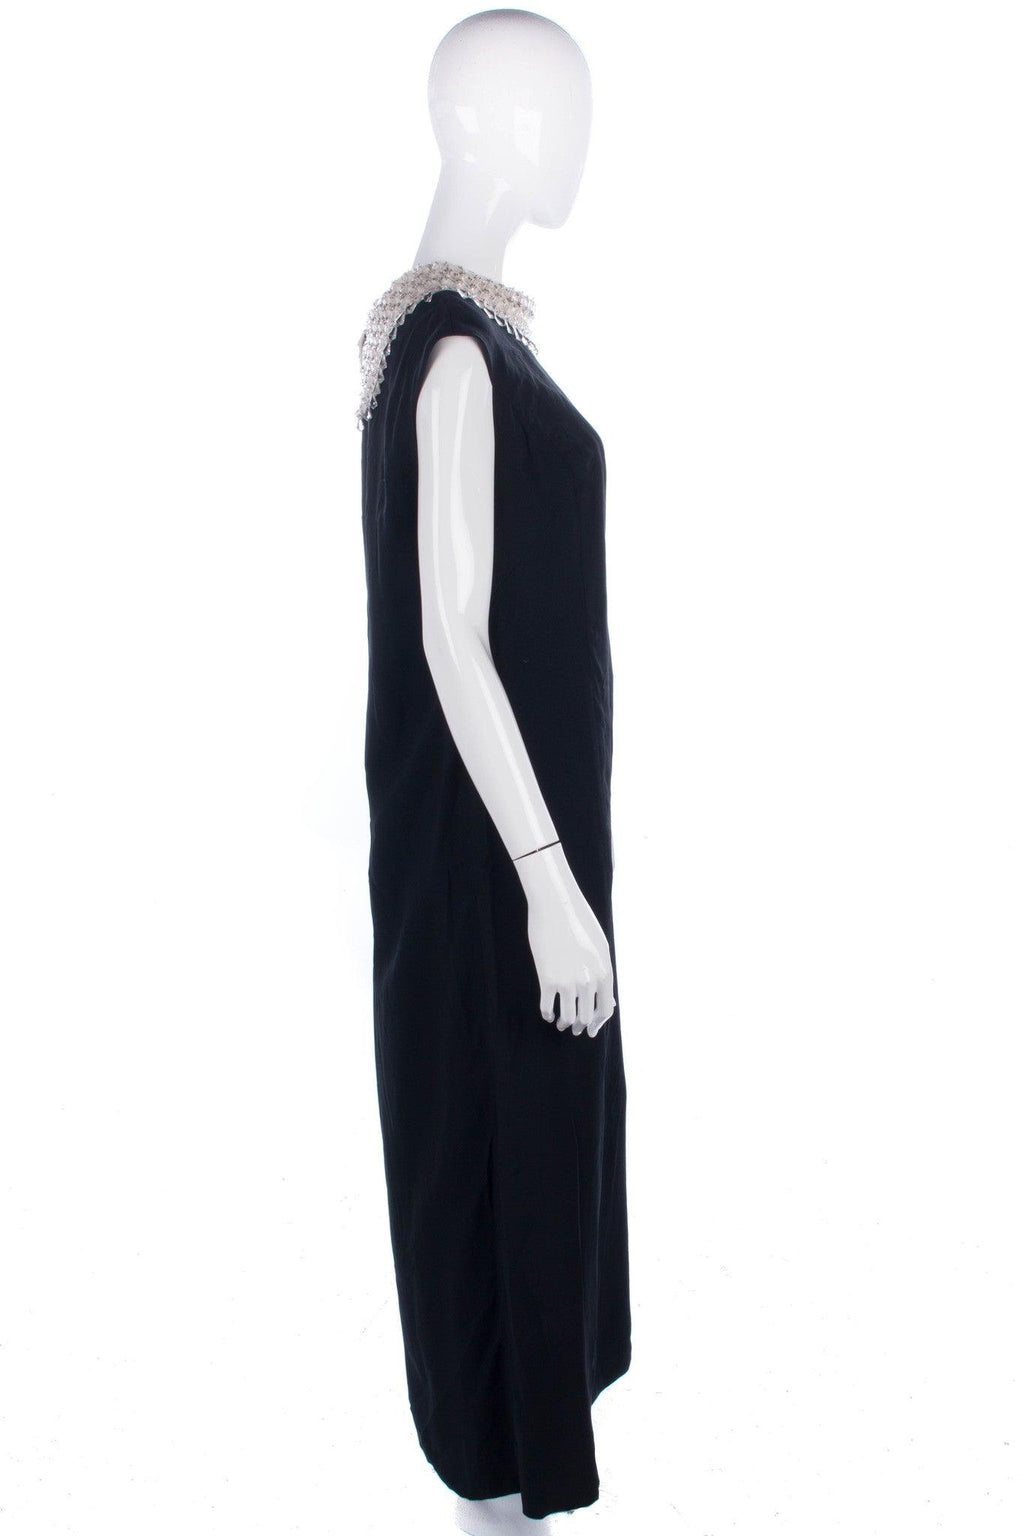 Classic straight vintage black evening gown with cream beaded collar